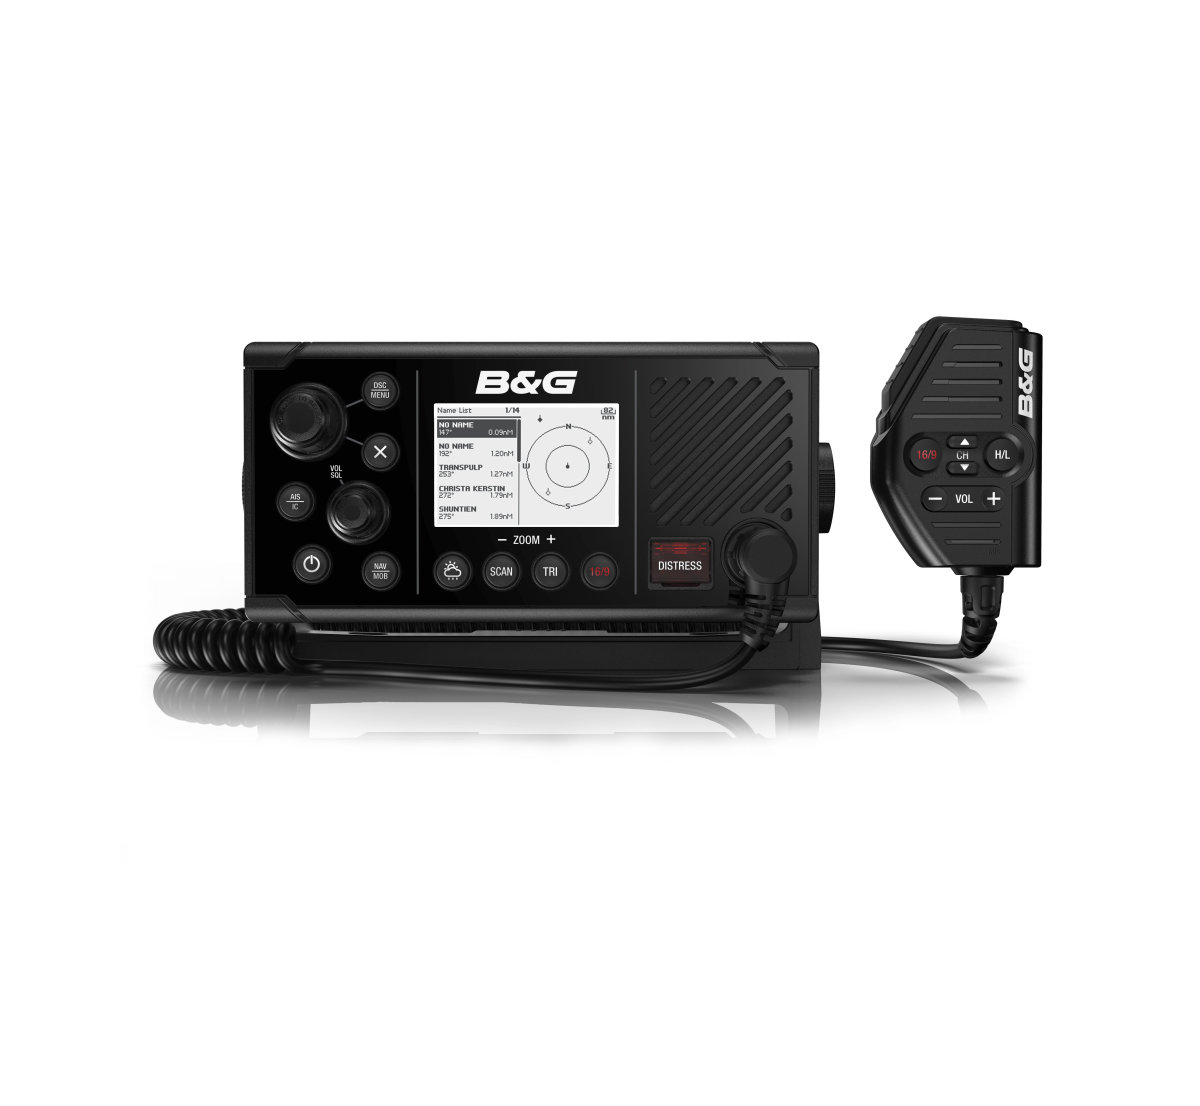 The B&G V60-B VHF Radio